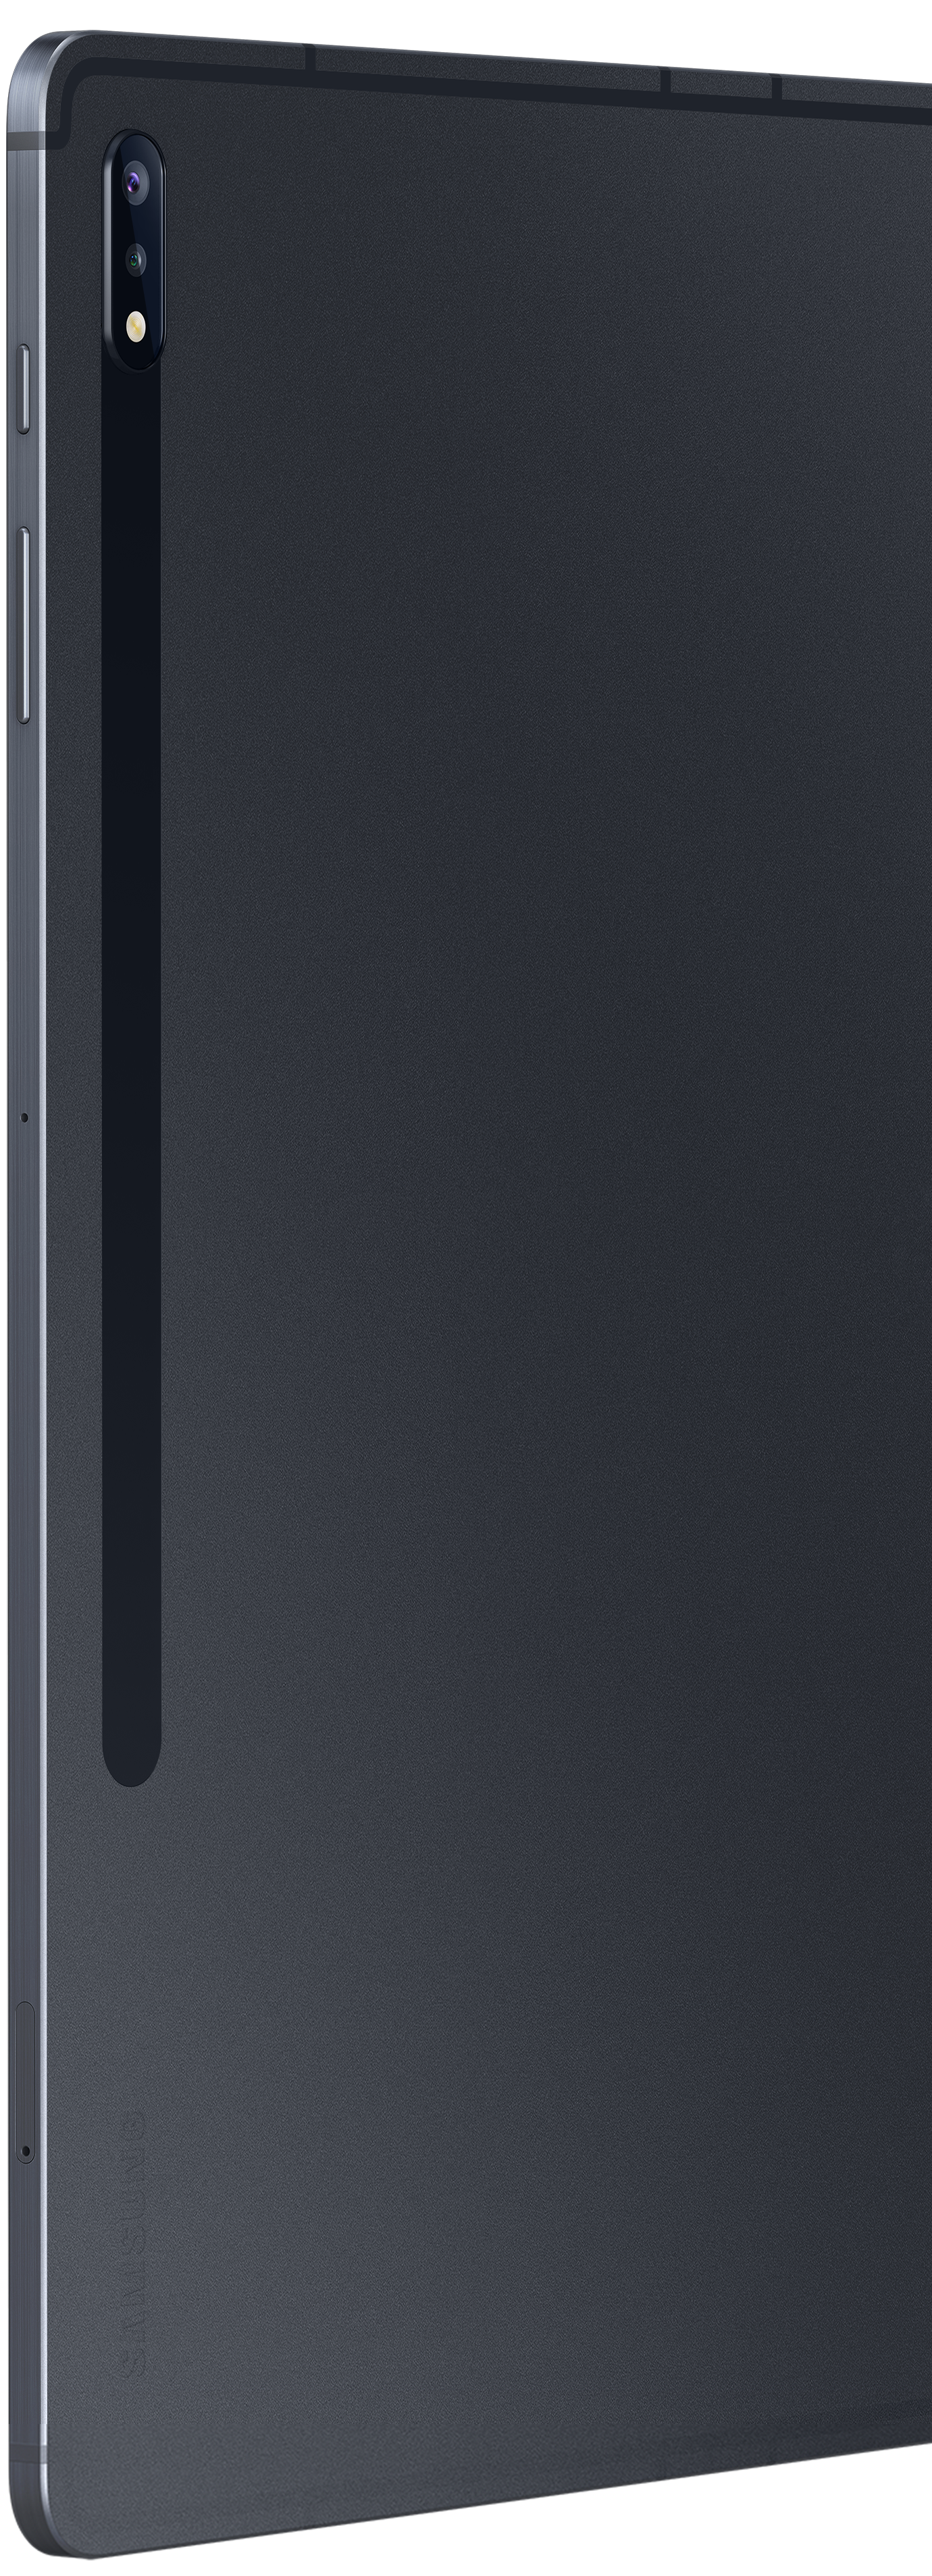 Close-up of Galaxy Tab S7+ in Mystic Black's rear view shows the rear camera placement